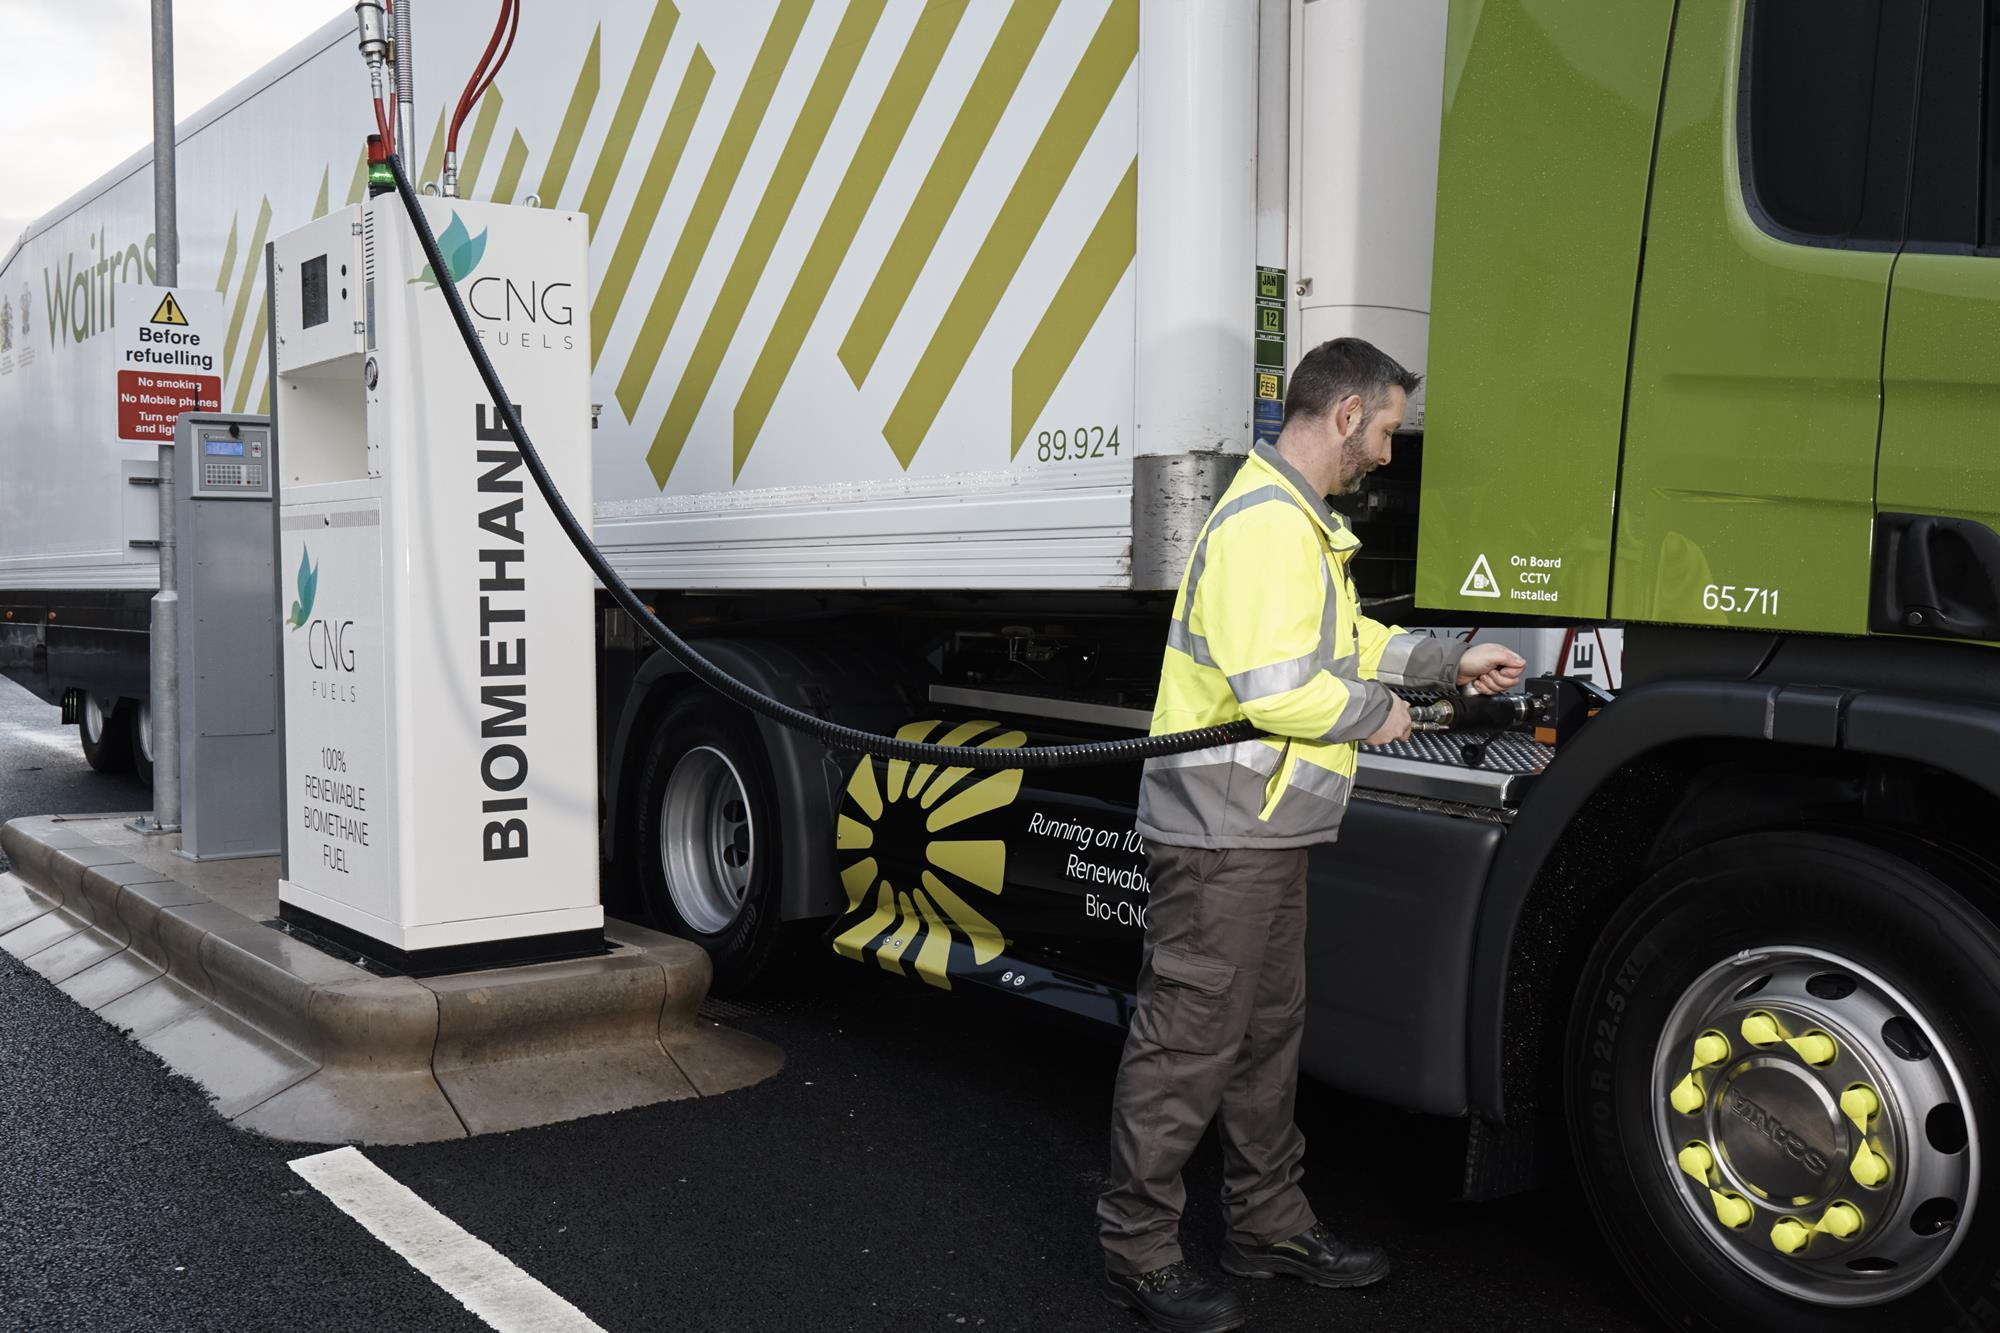 CNG Fuels takes part in large-scale study of biomethane fuel for